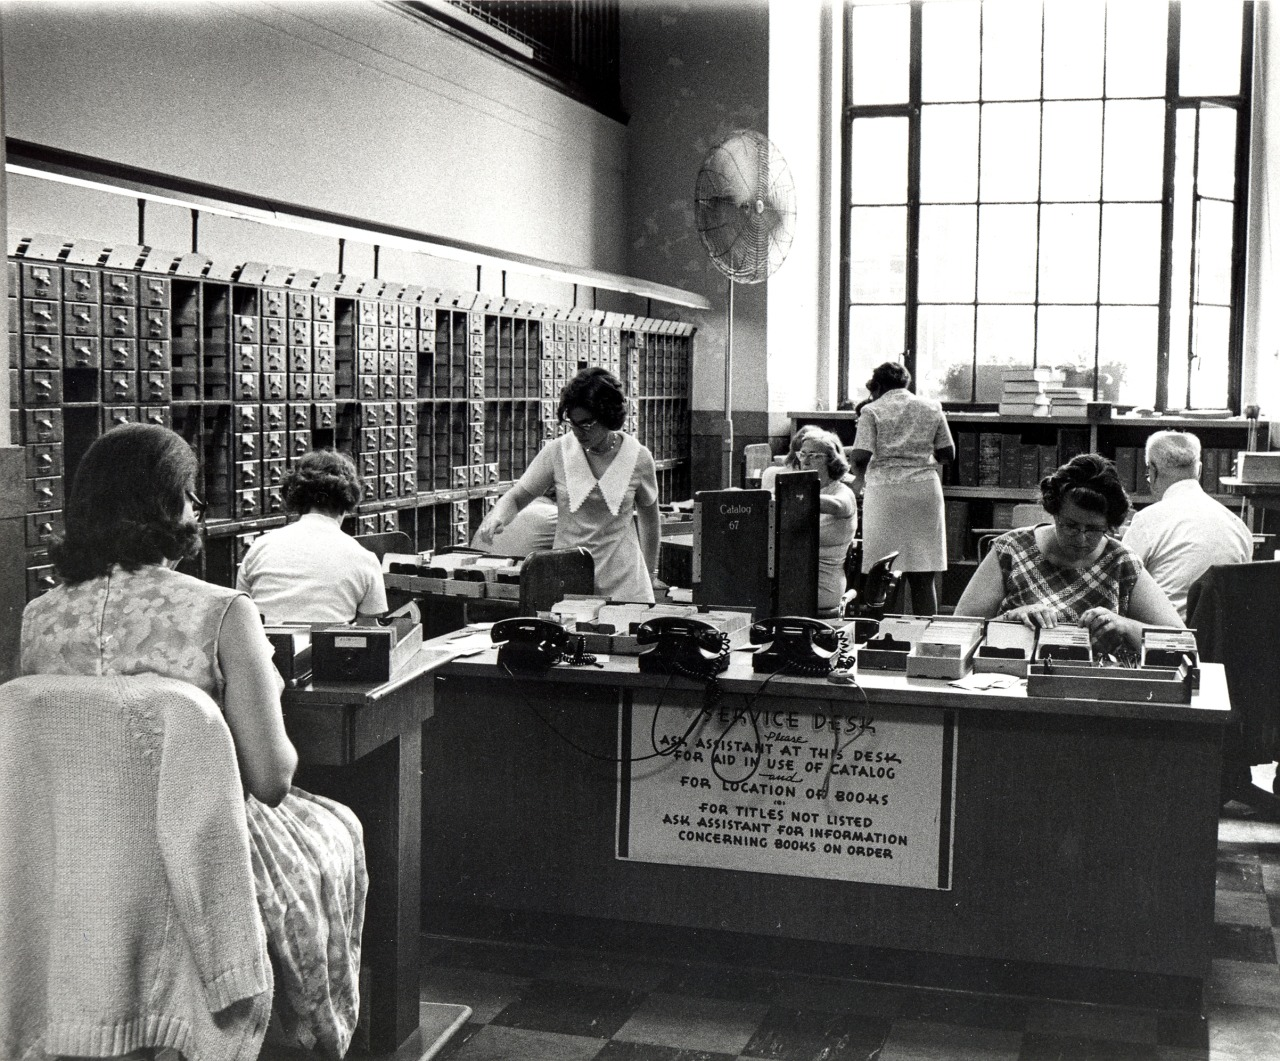 Black and white photo of the Service Desk/Workroom area, also from 1973.